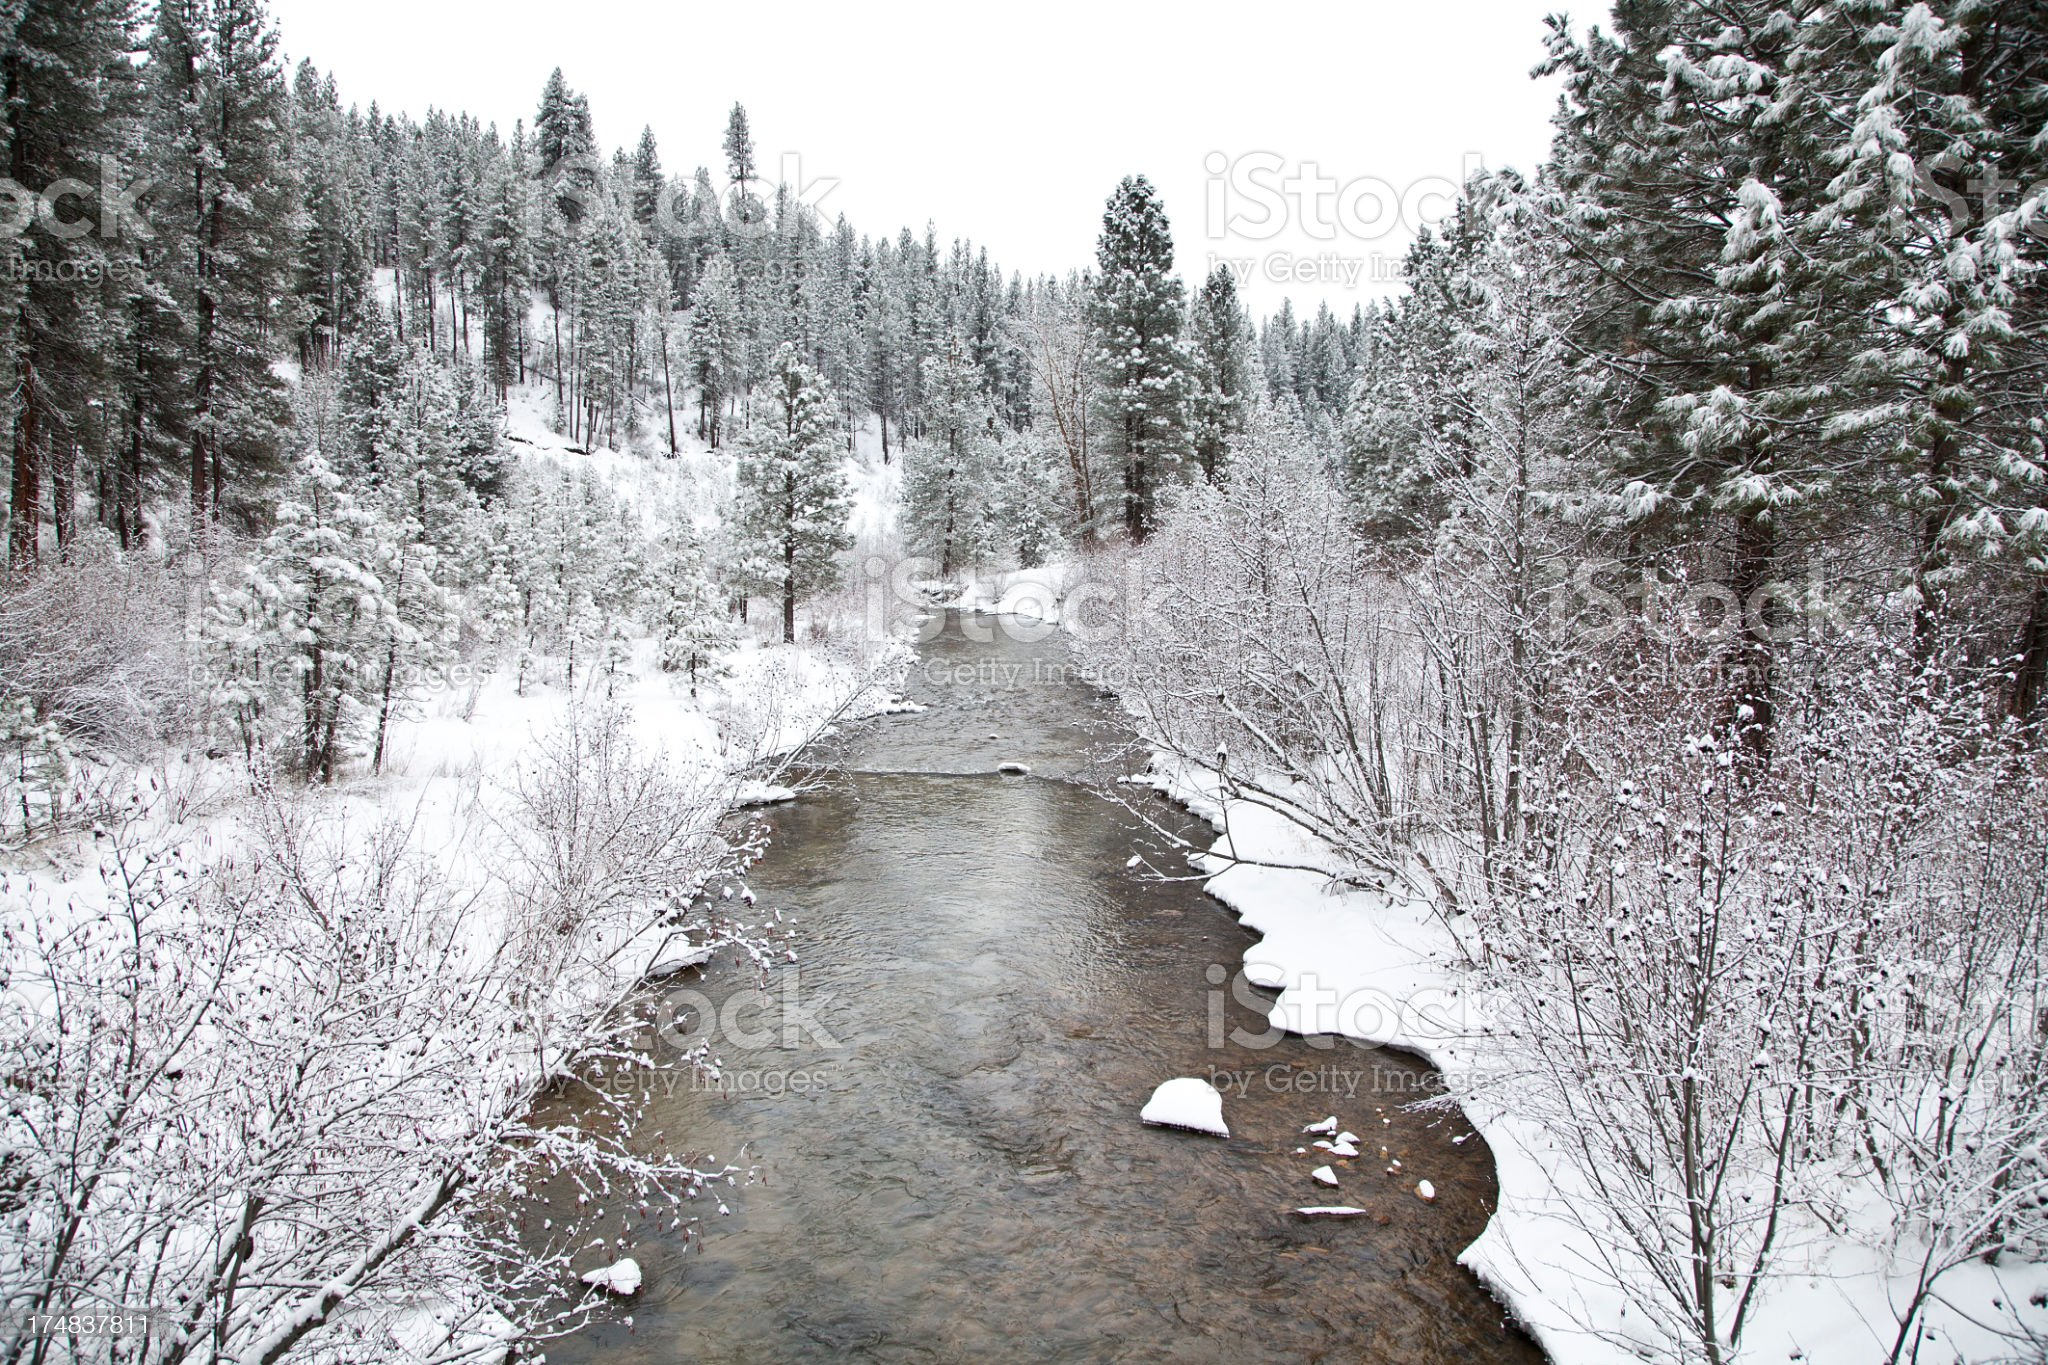 Wilderness River in the Mountains of Idaho royalty-free stock photo